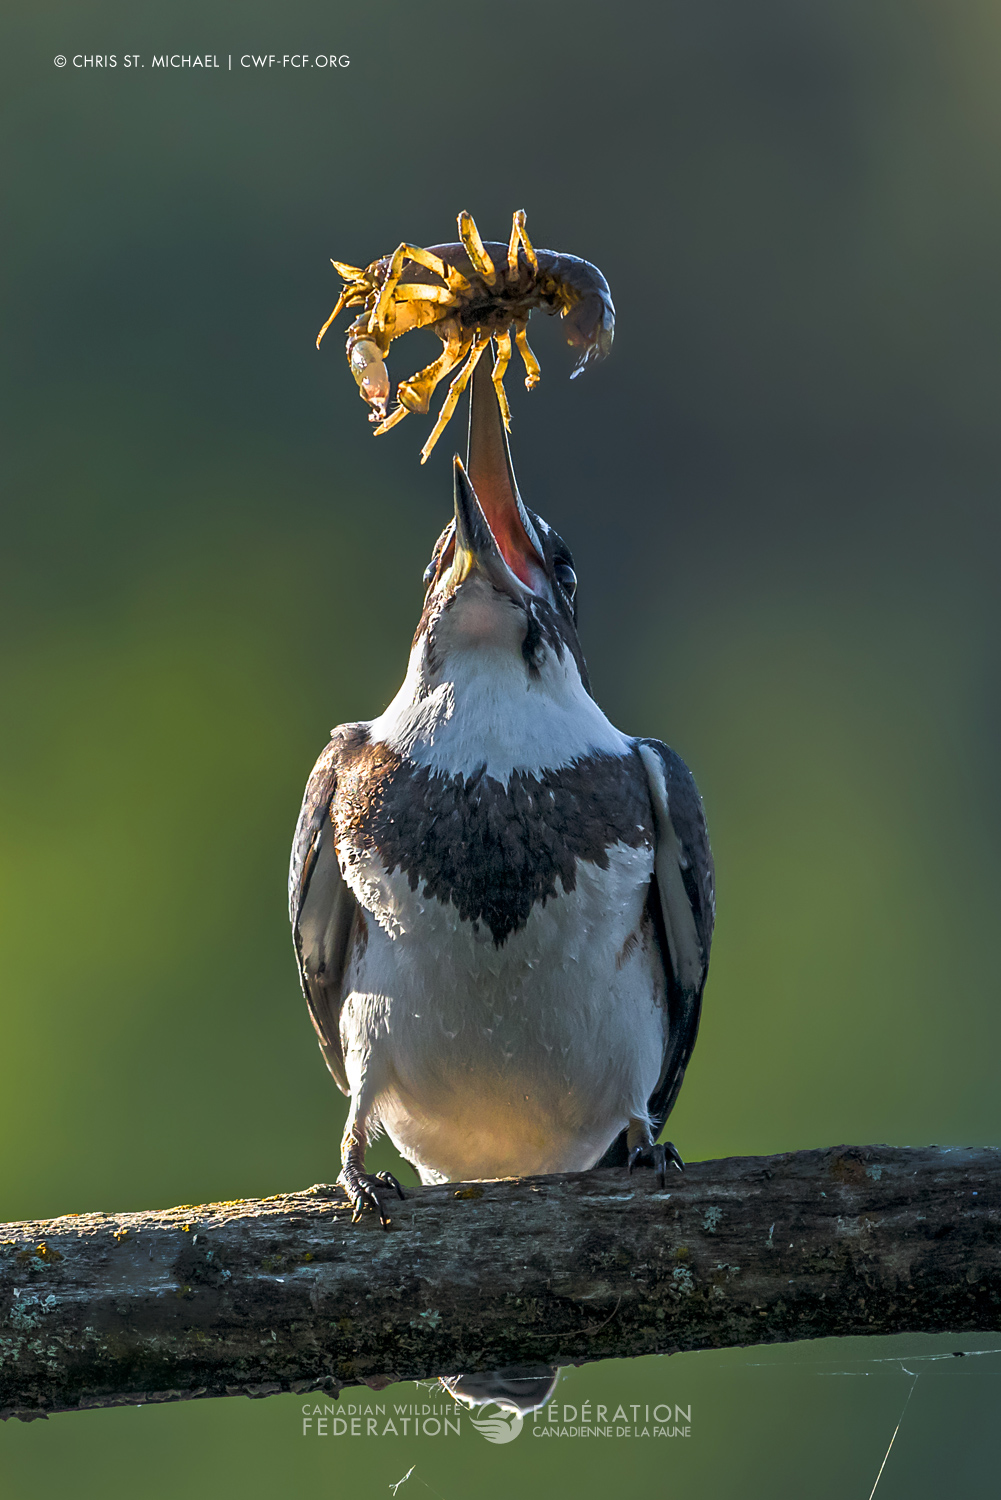 """""""Kingfisher and the Crayfish"""" by Chris St. Michael"""